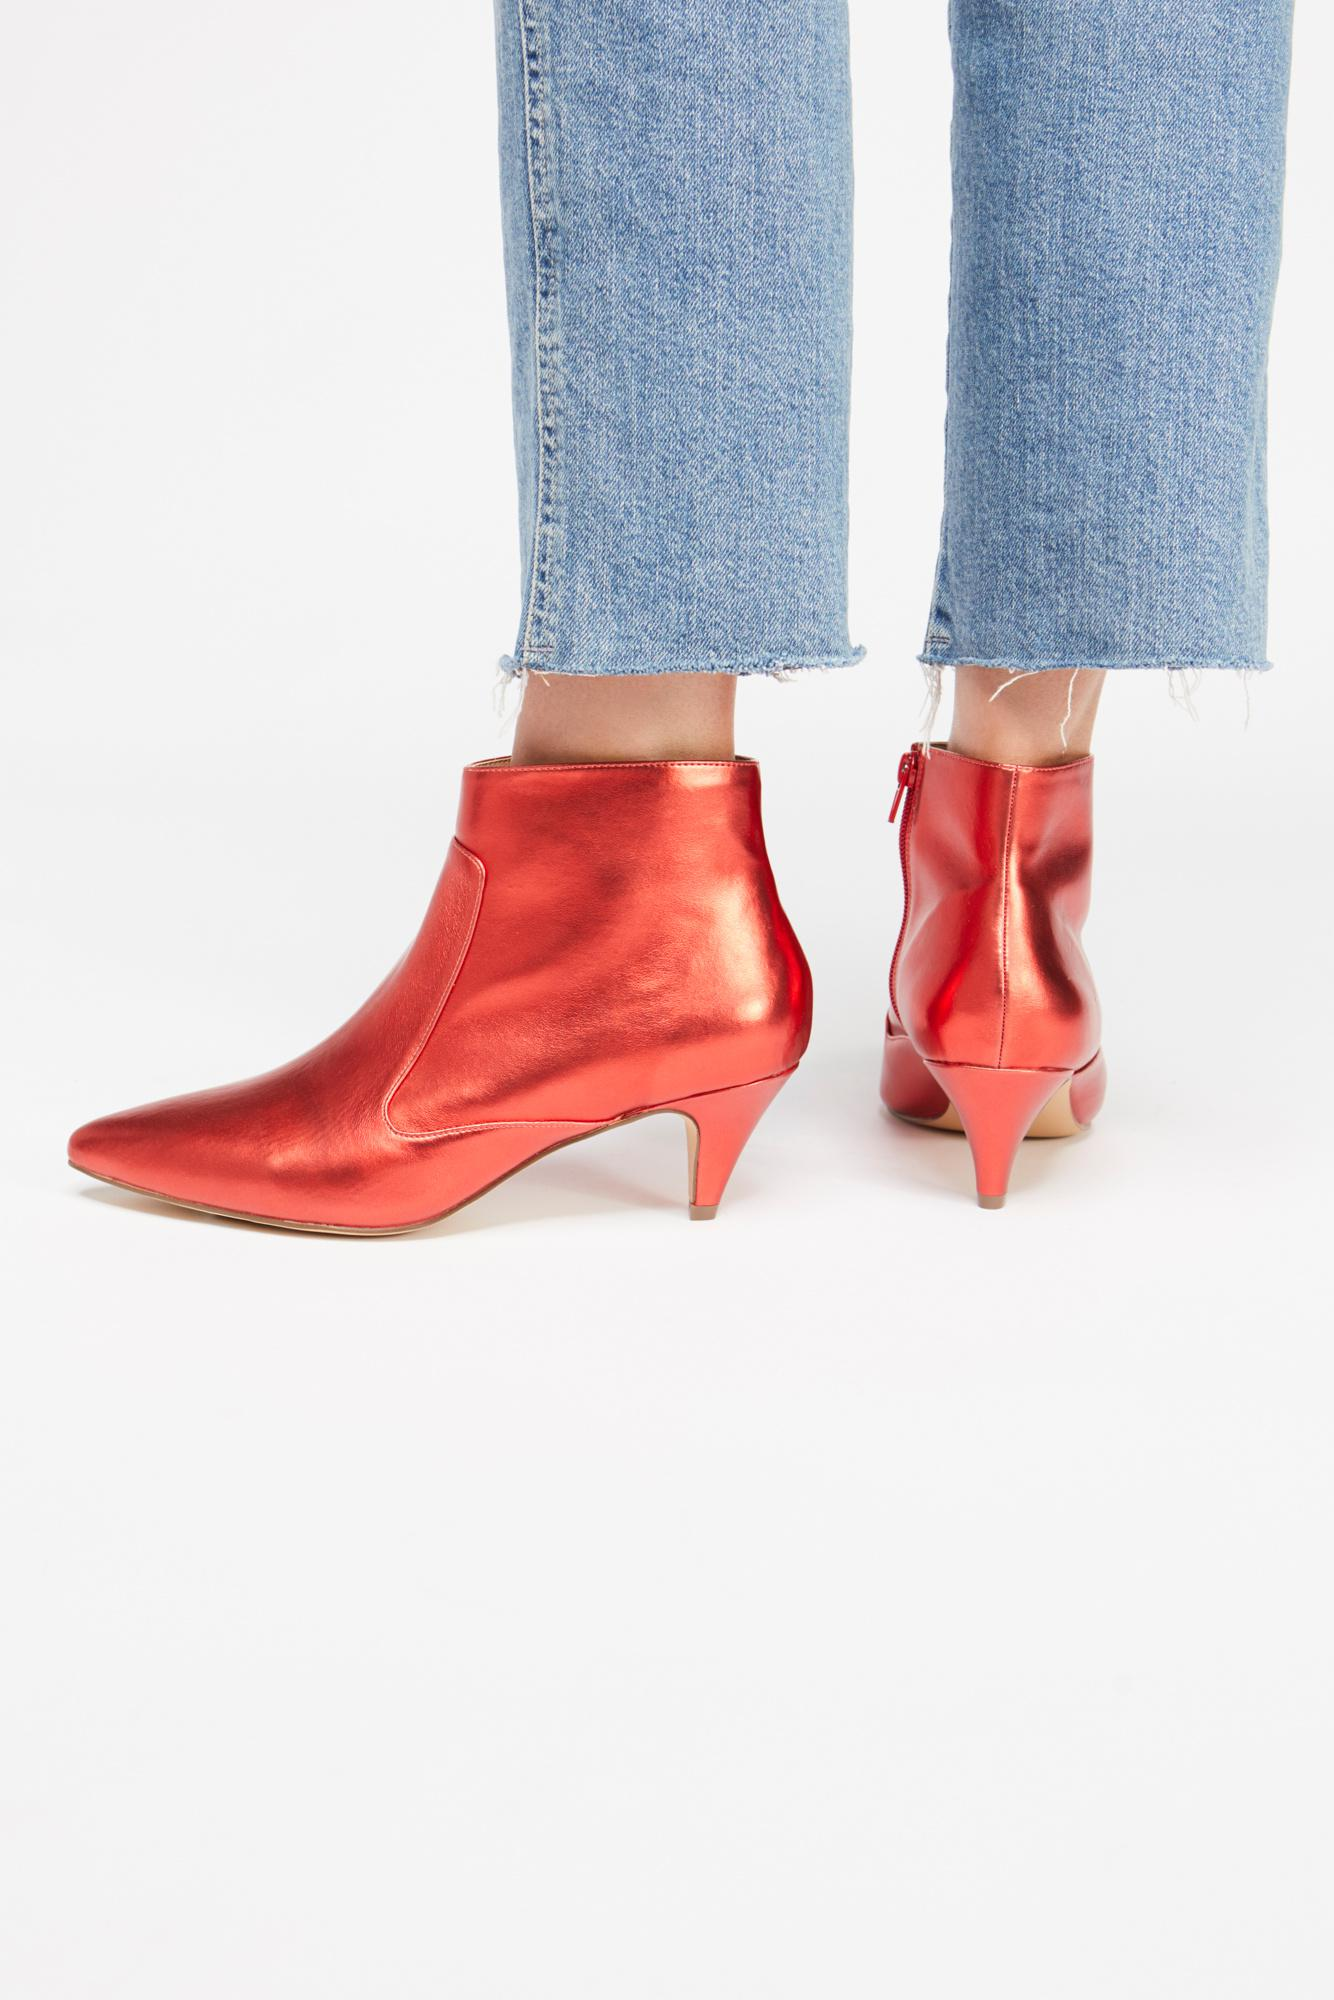 526310bd9 Free People Kizzy Kitten Heel Boot By Jane And The Shoe in Red - Lyst